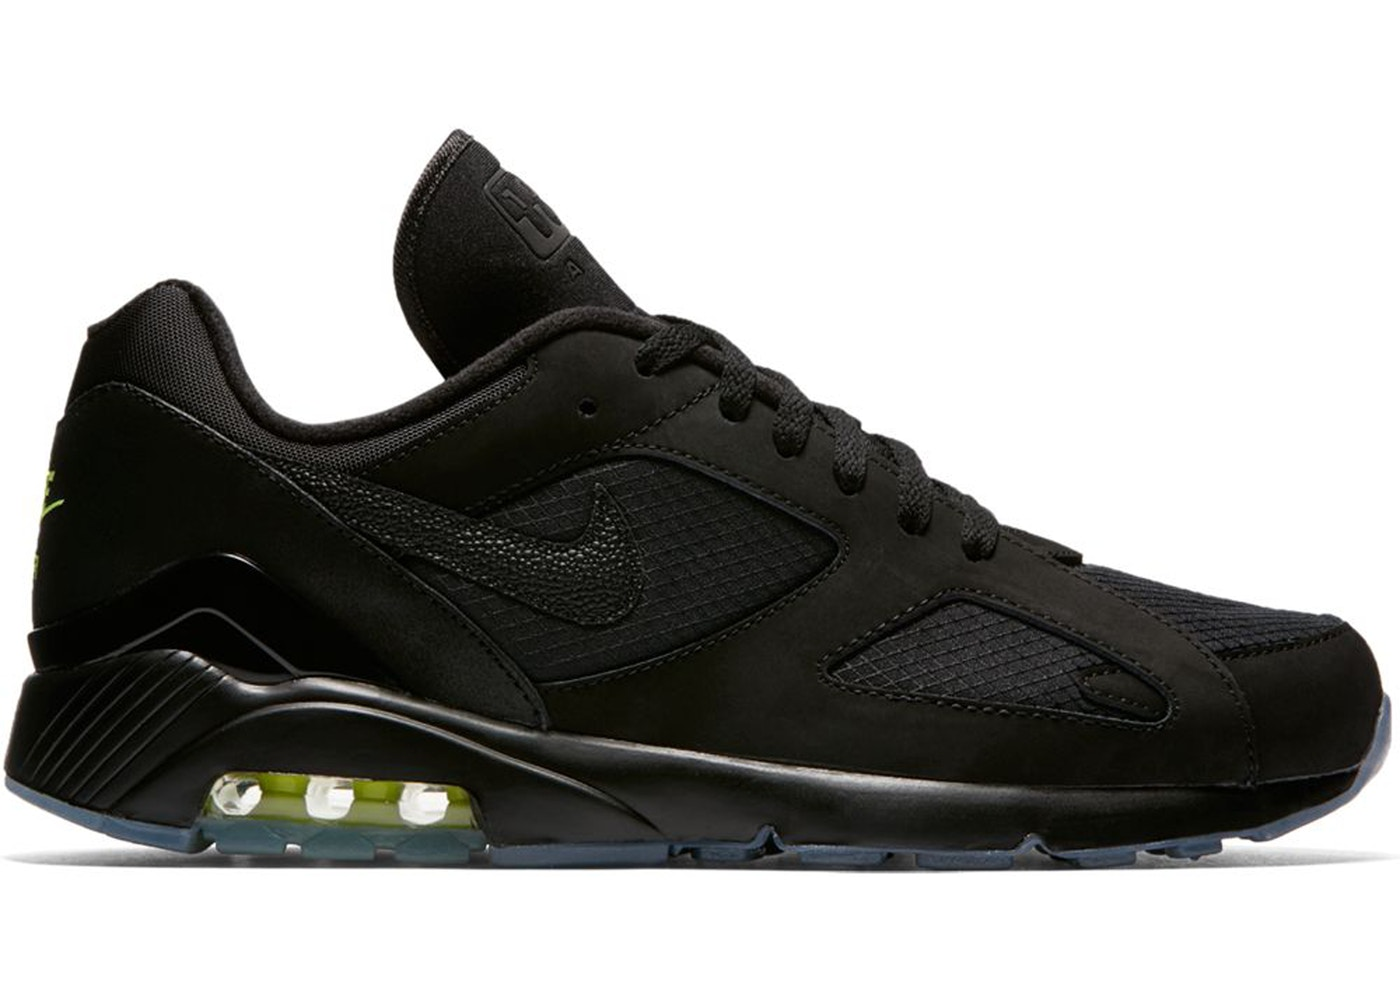 889e9ca982ee4 Air Max 180 Night Ops - AQ6104-001